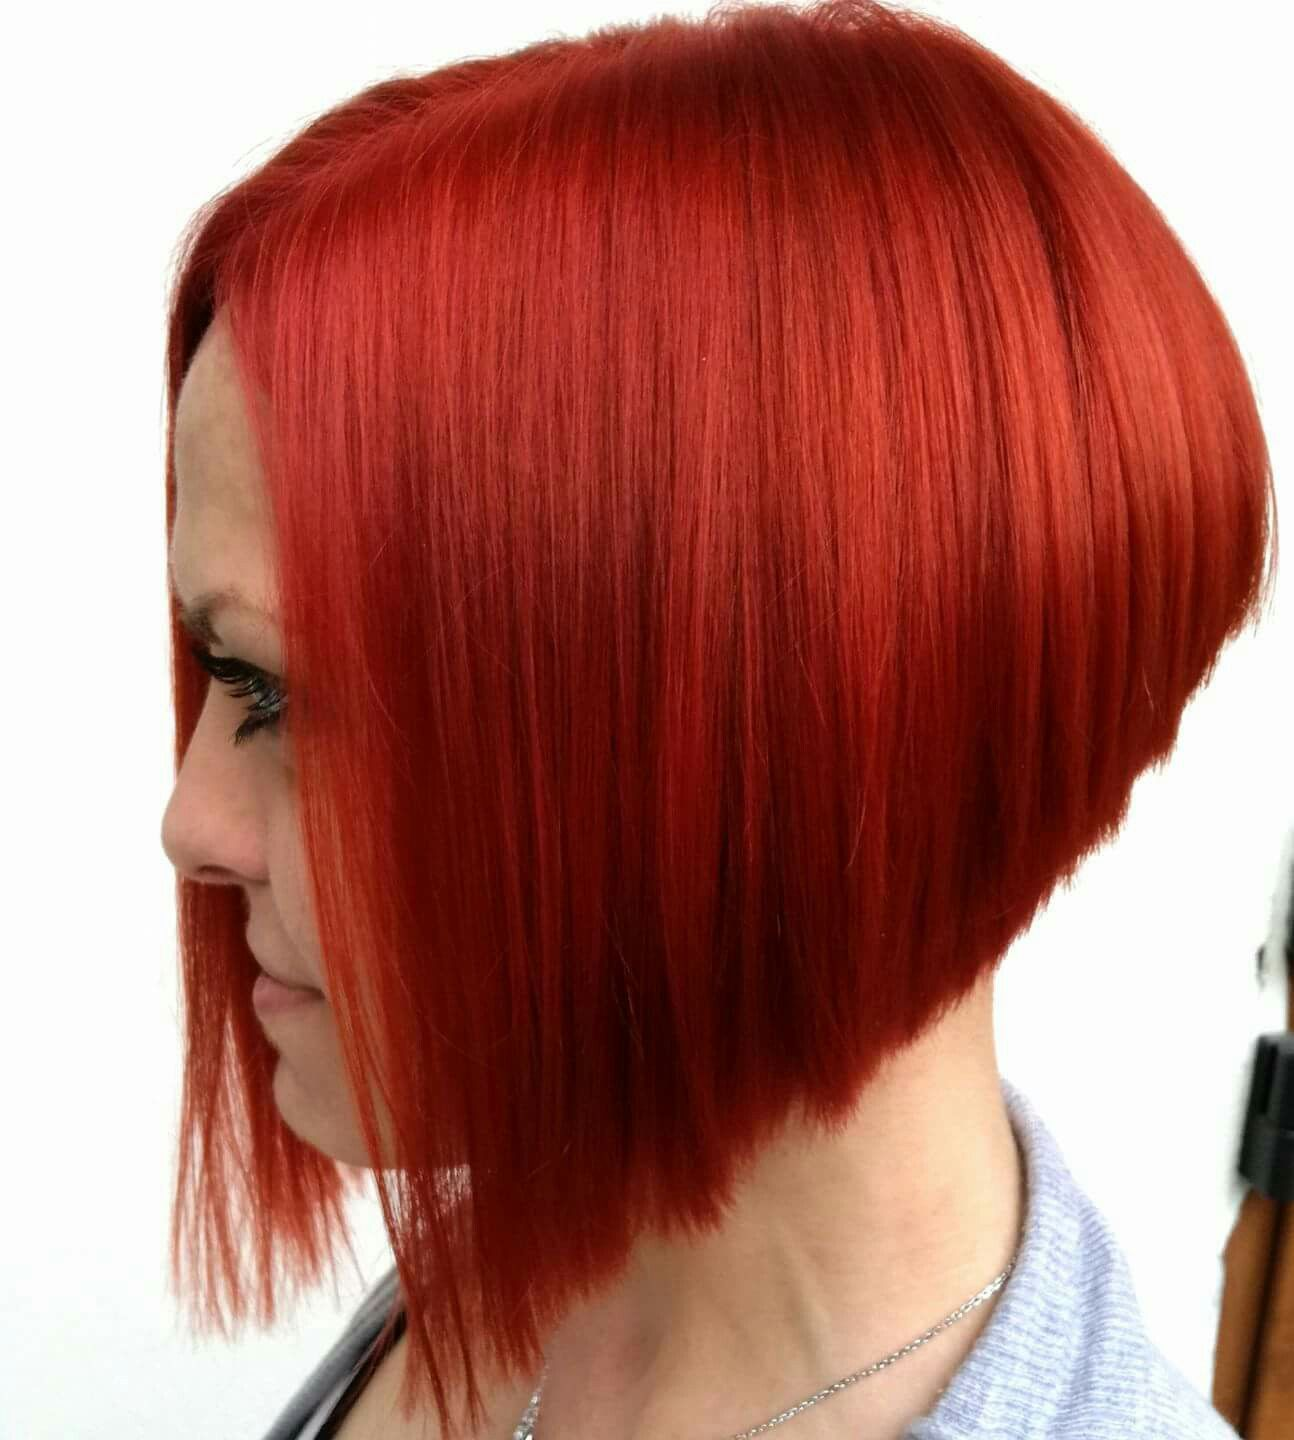 Red hair bollb #sexy  Red - Orange